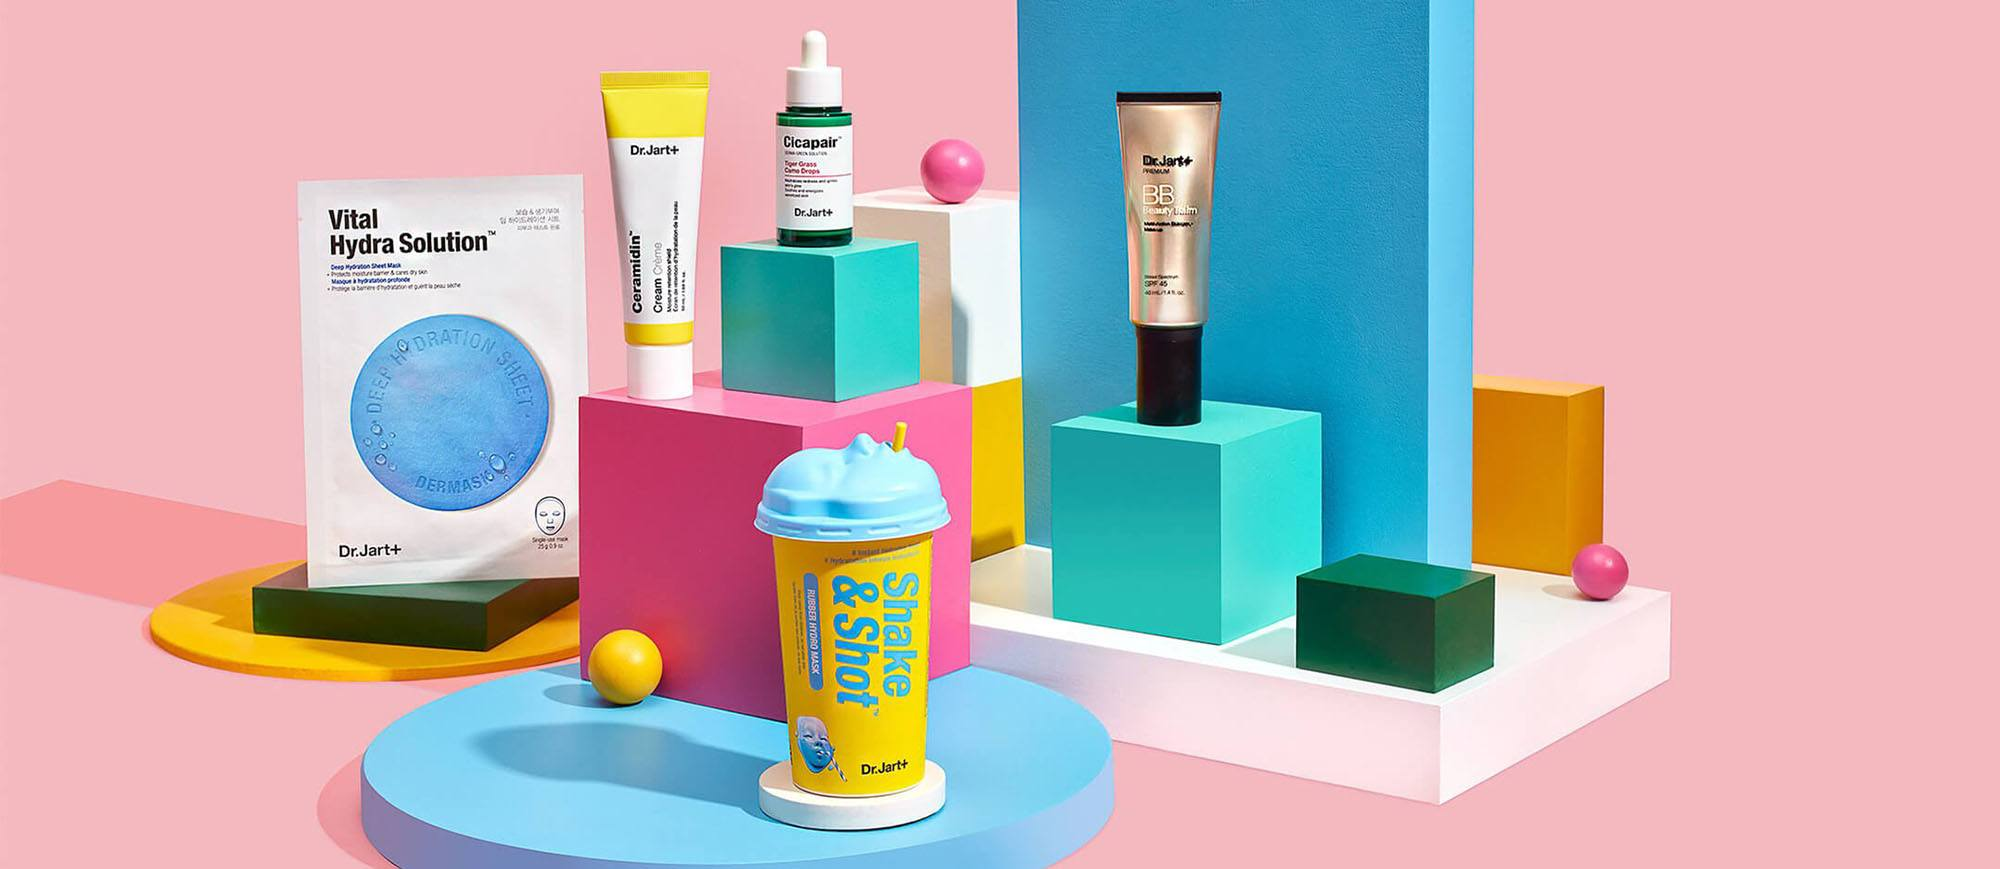 Different Dr. Jart products on various size pedestals on a pink background